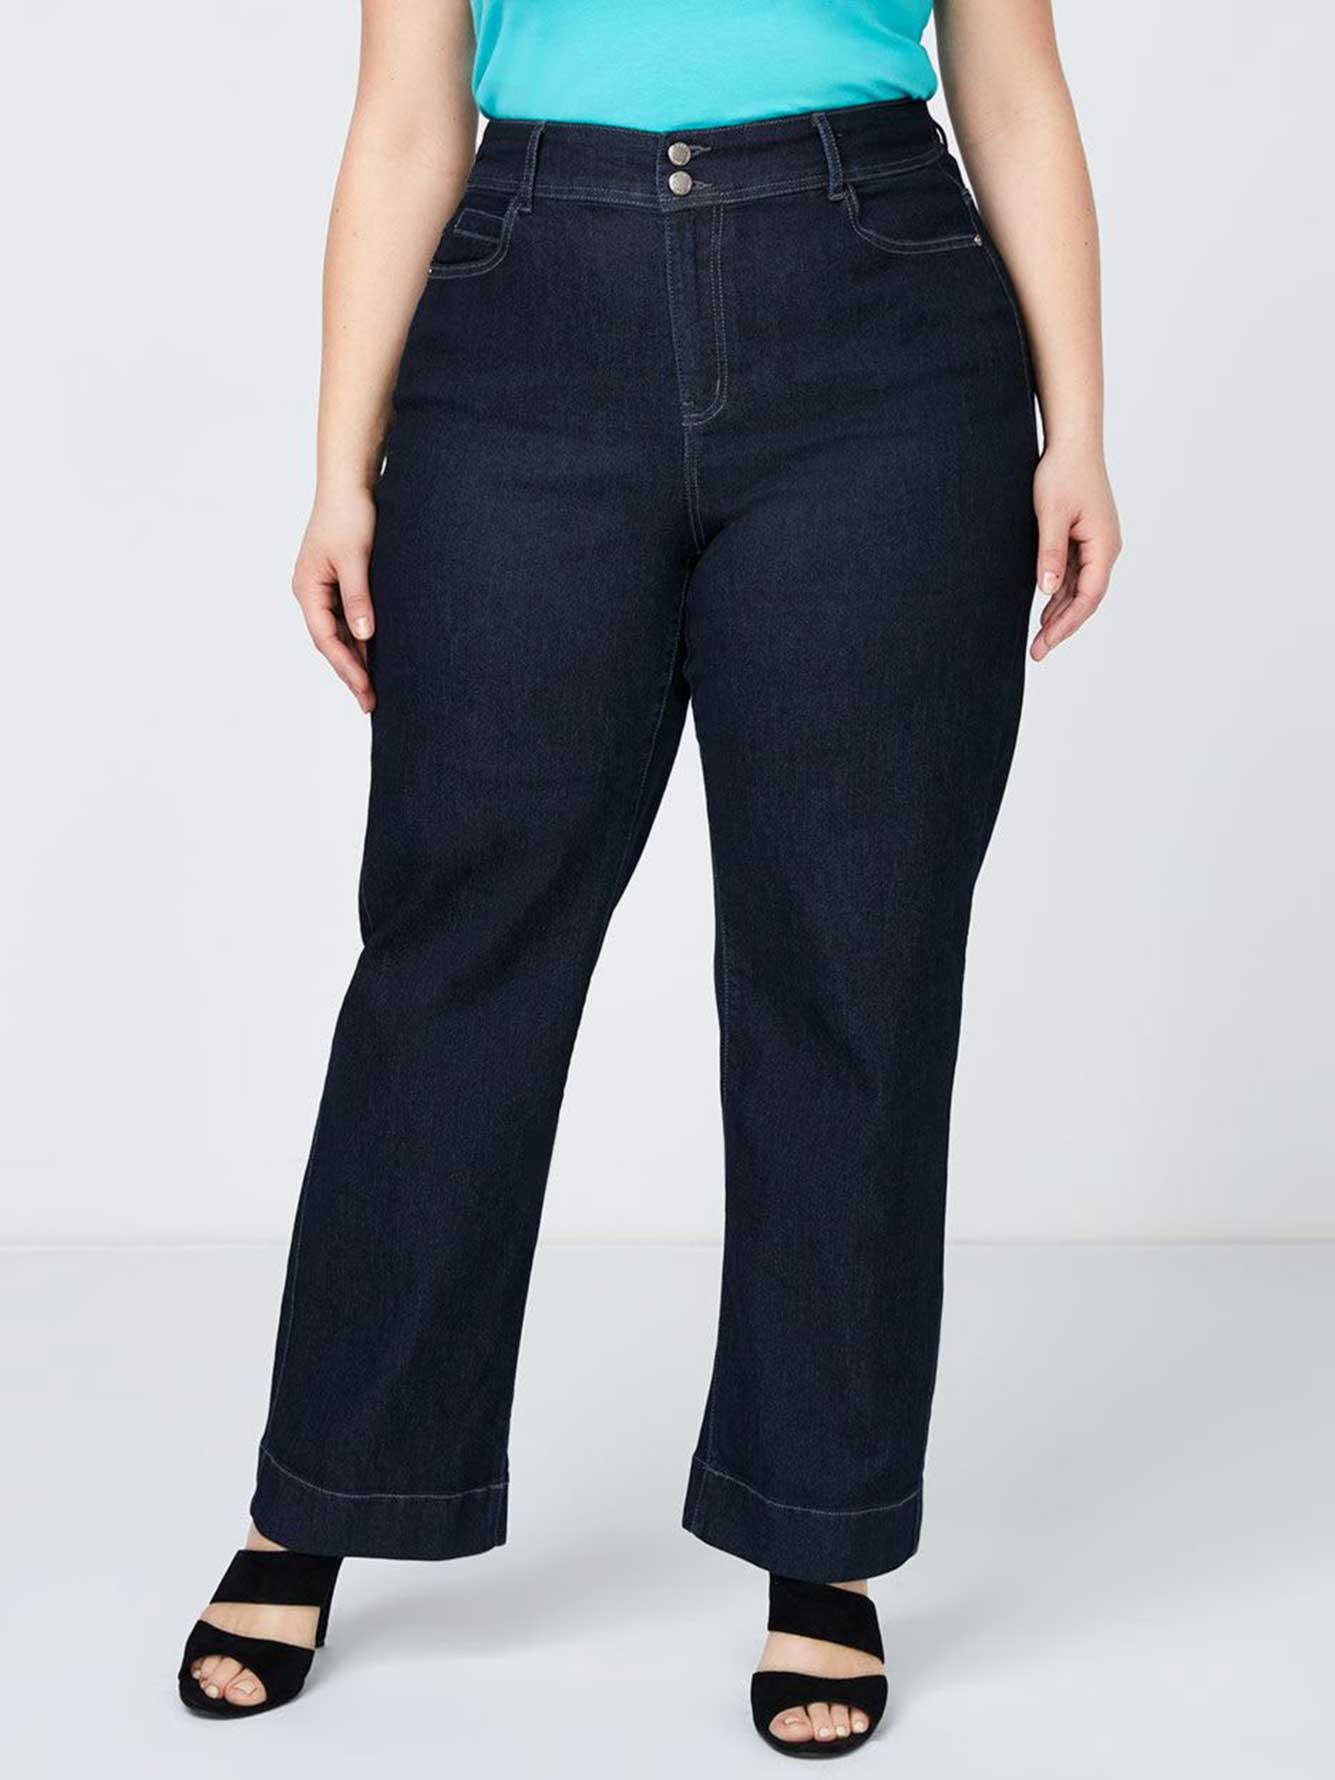 ONLINE ONLY - Tall Curvy Fit Wide Leg Trouser Jean - d/c Jeans